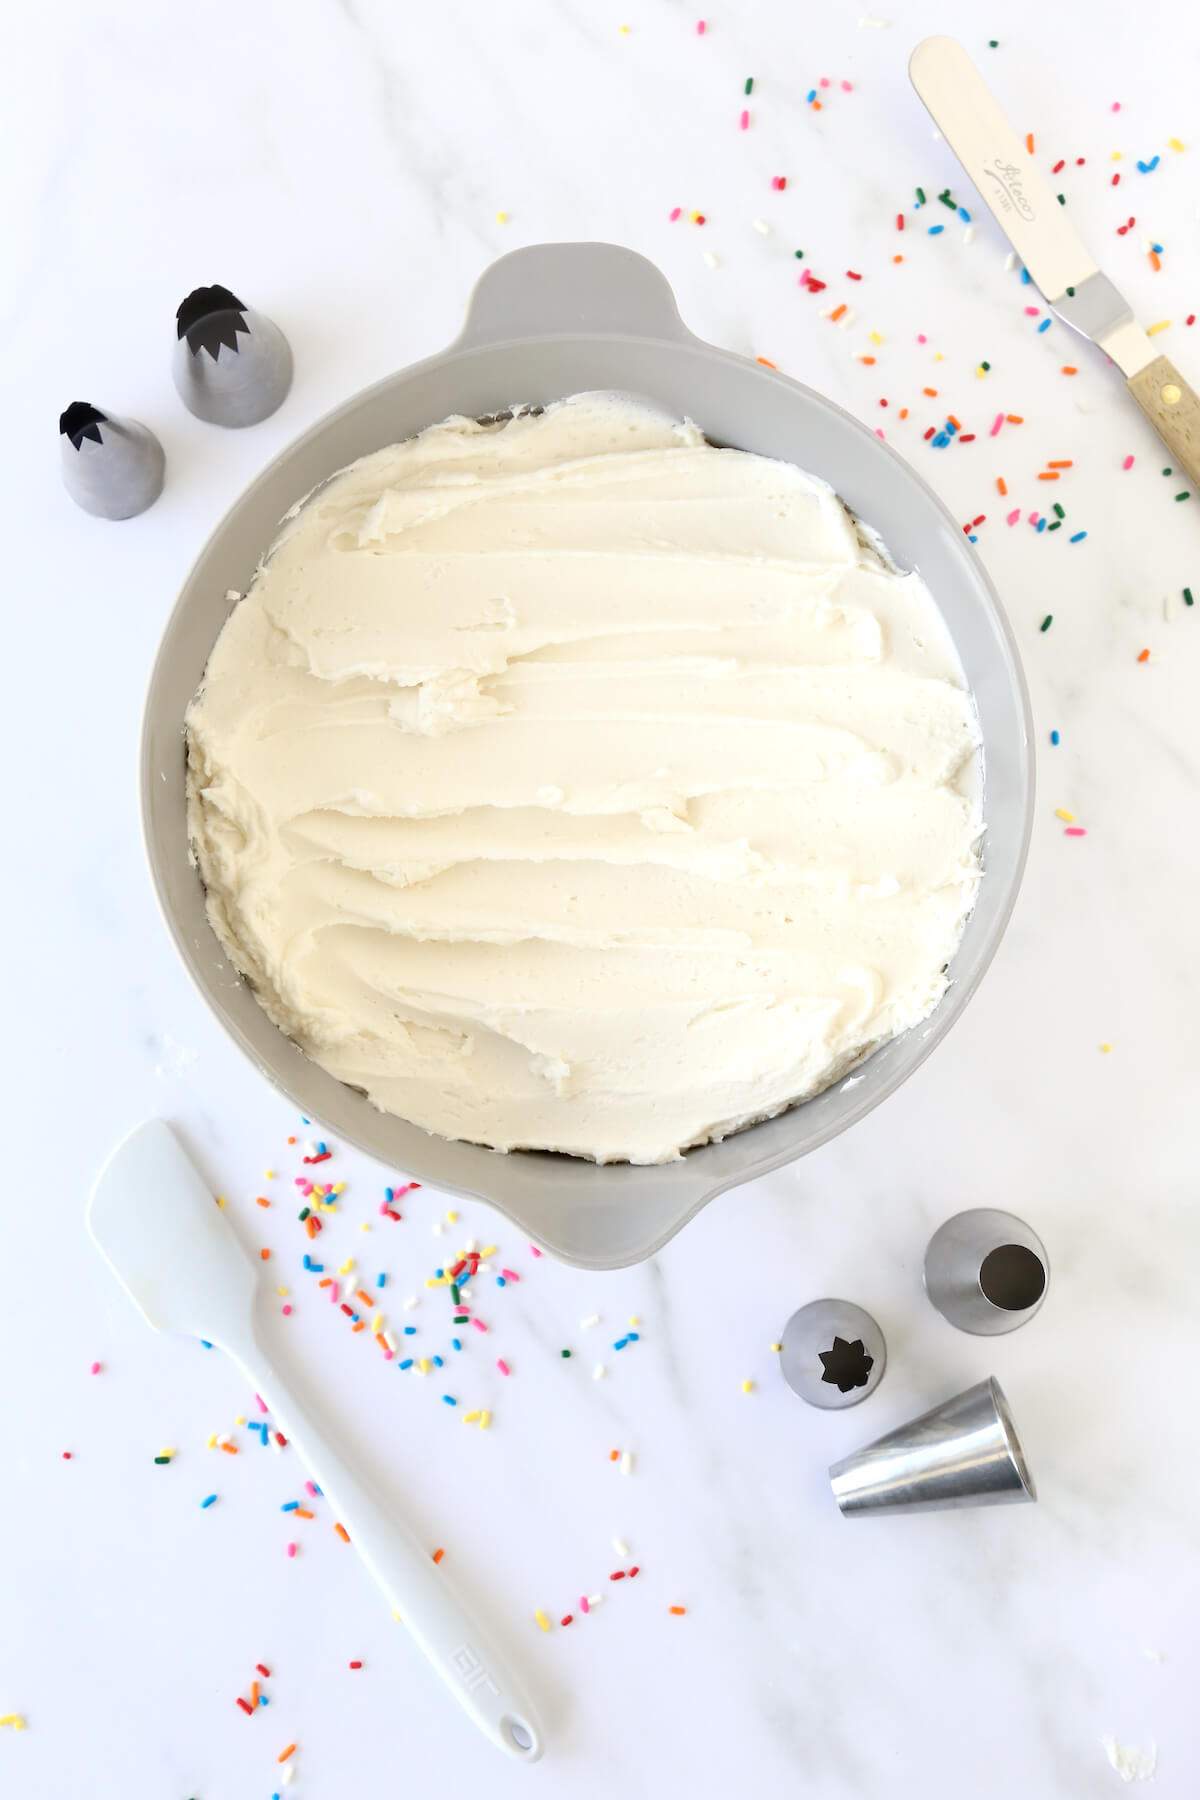 a bowl of white frosting surrounded by sprinkles, piping tips and spatulas.